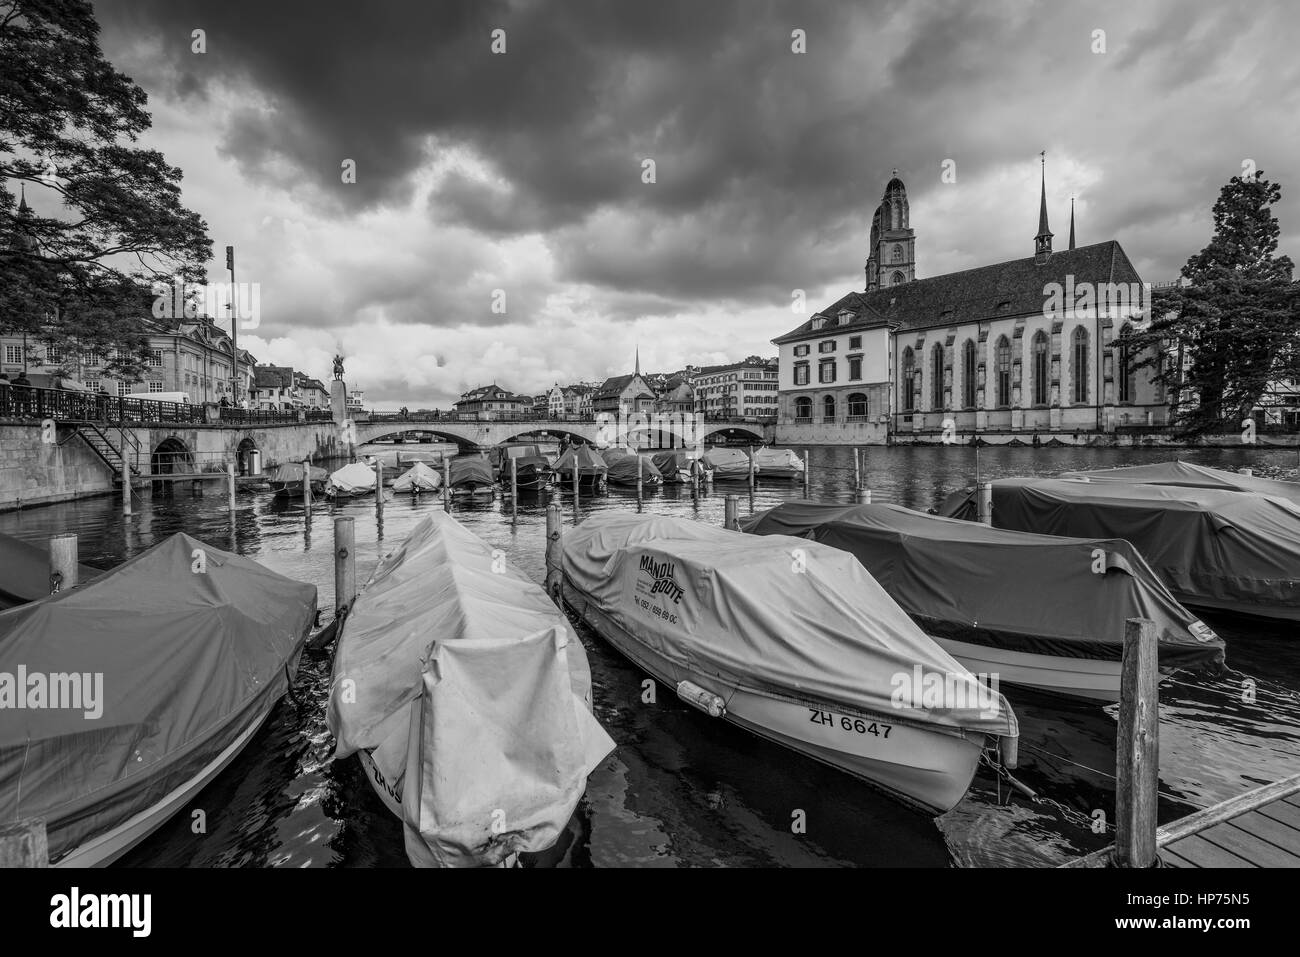 Zurich, Switzerland - May 24, 2016: Architecture of Zurich in overcast rainy weather, the largest city in Switzerland - Stock Image